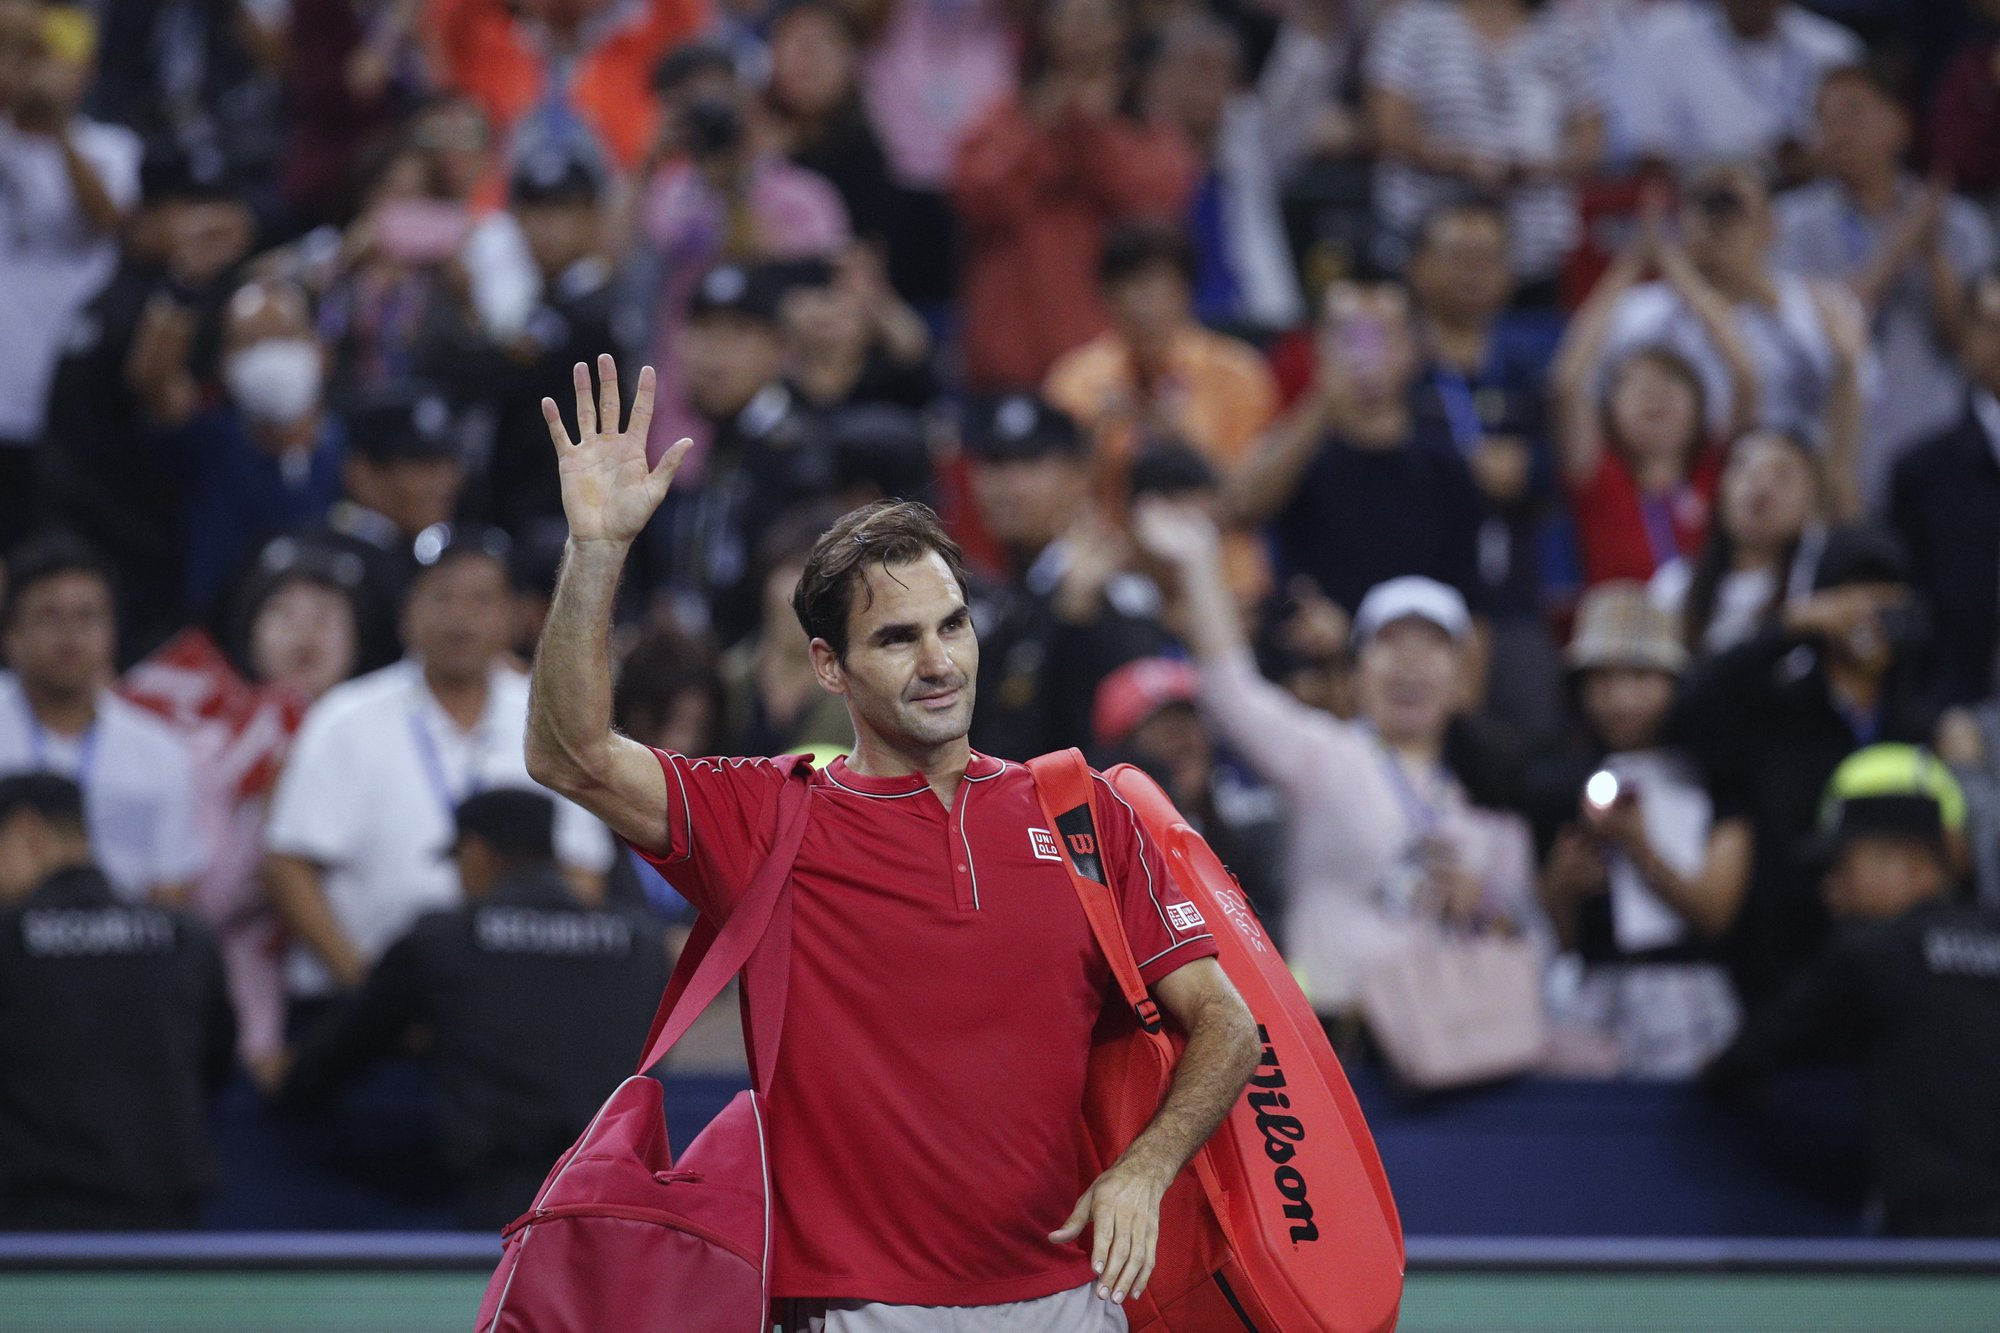 Roger Federer says he plans to play at 2020 Tokyo Olympics